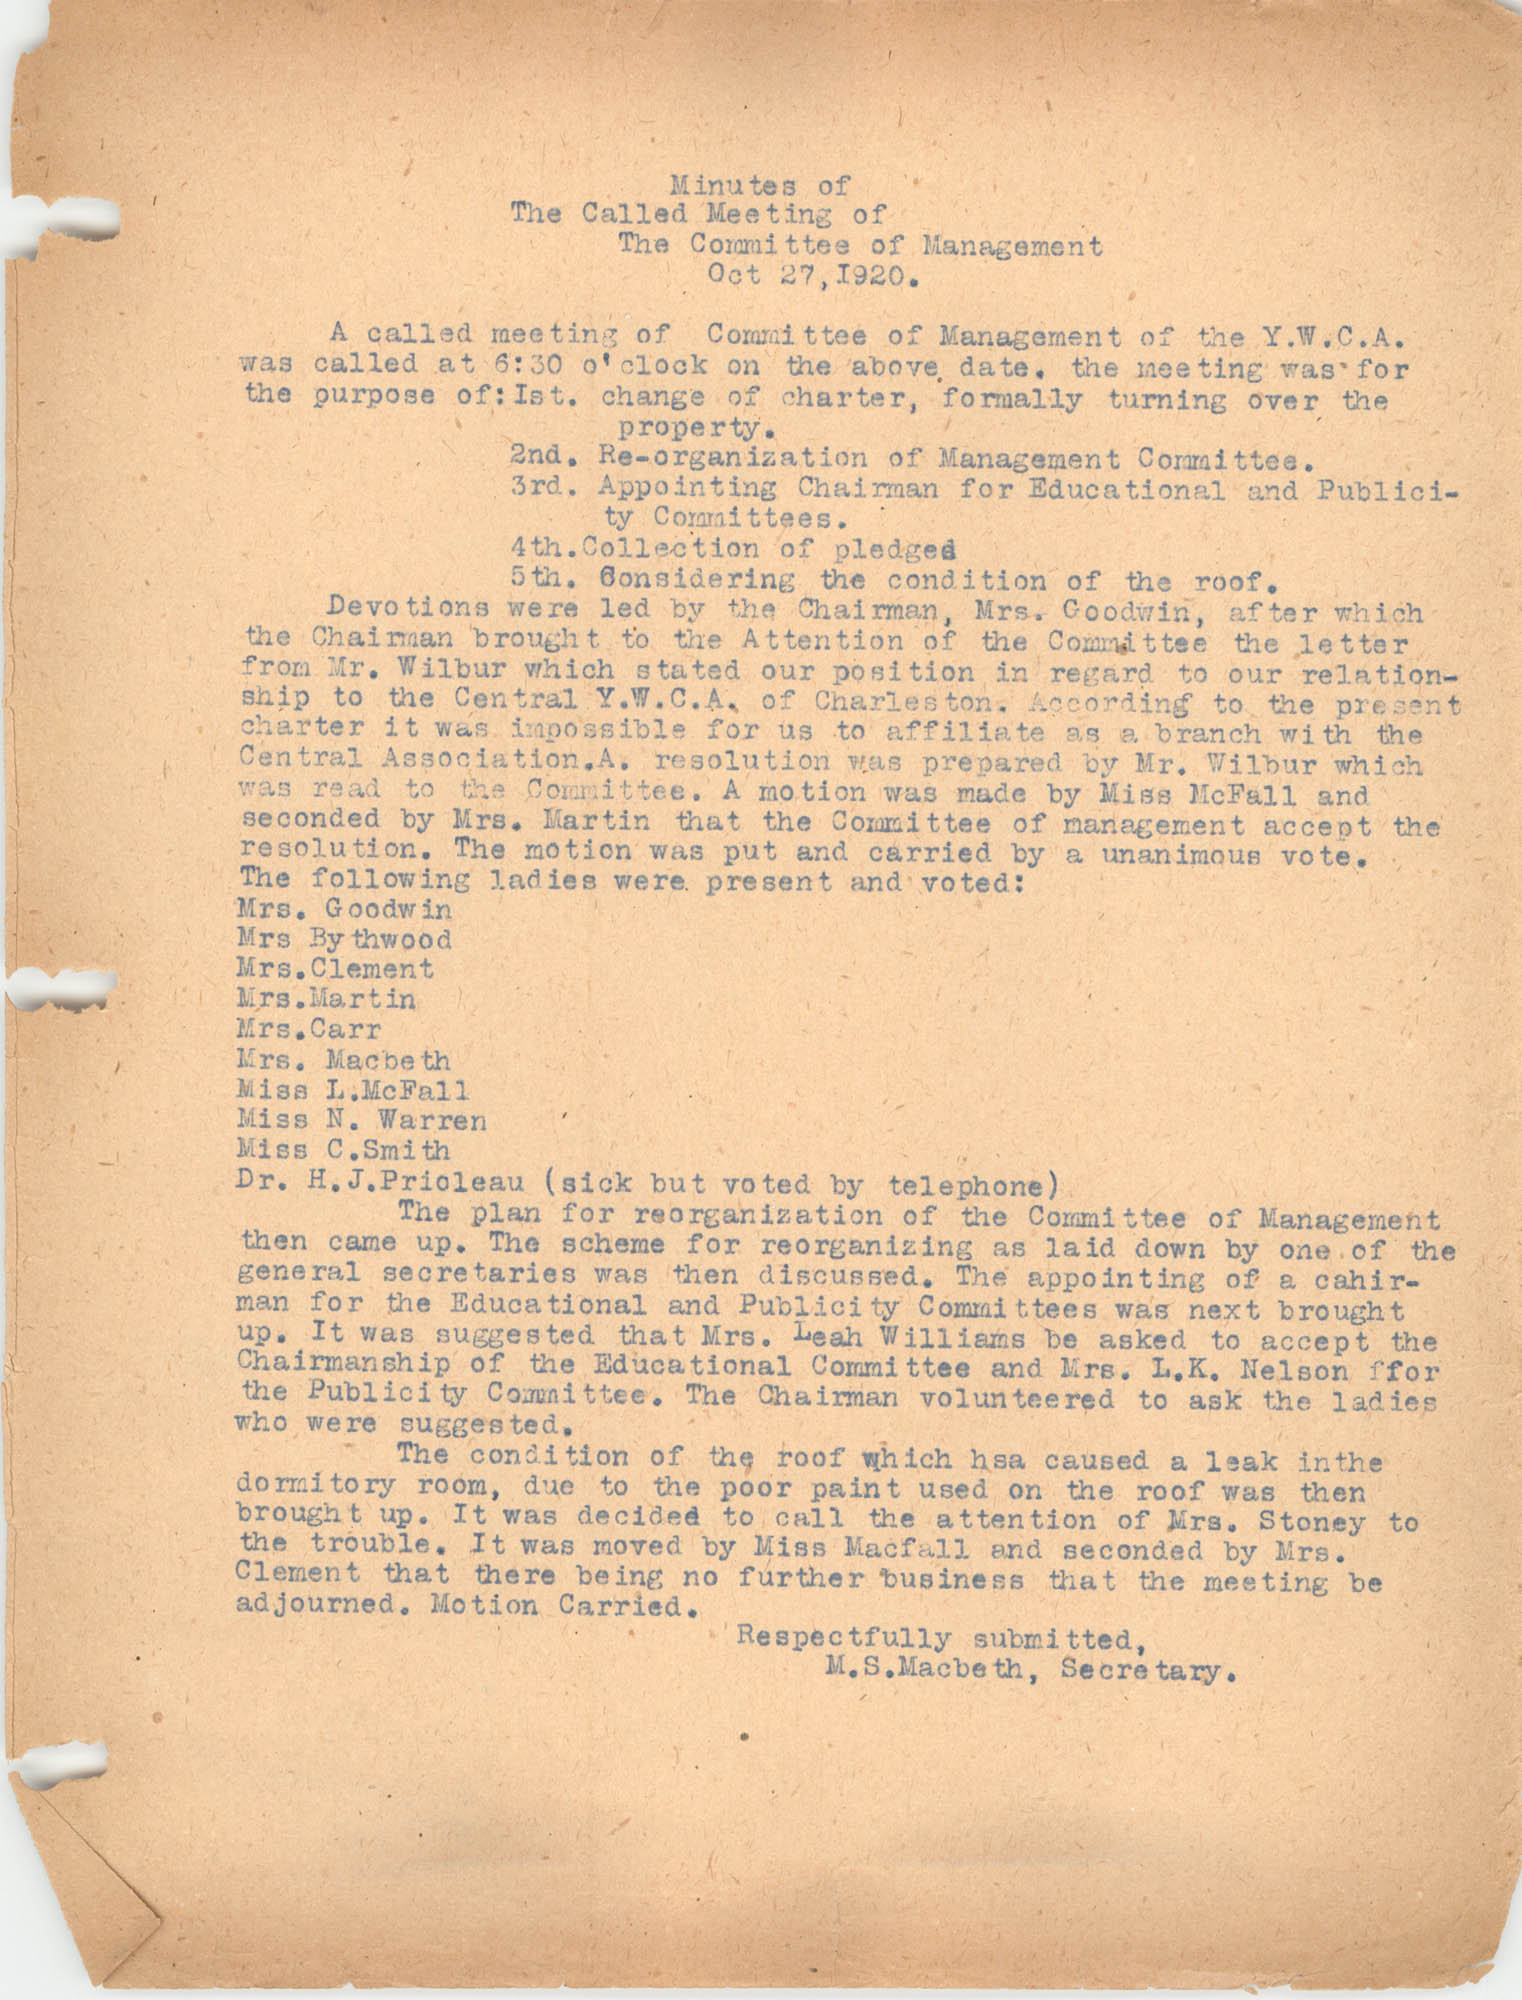 Minutes to the Management Committee, Coming Street Y.W.C.A., October 27, 1920